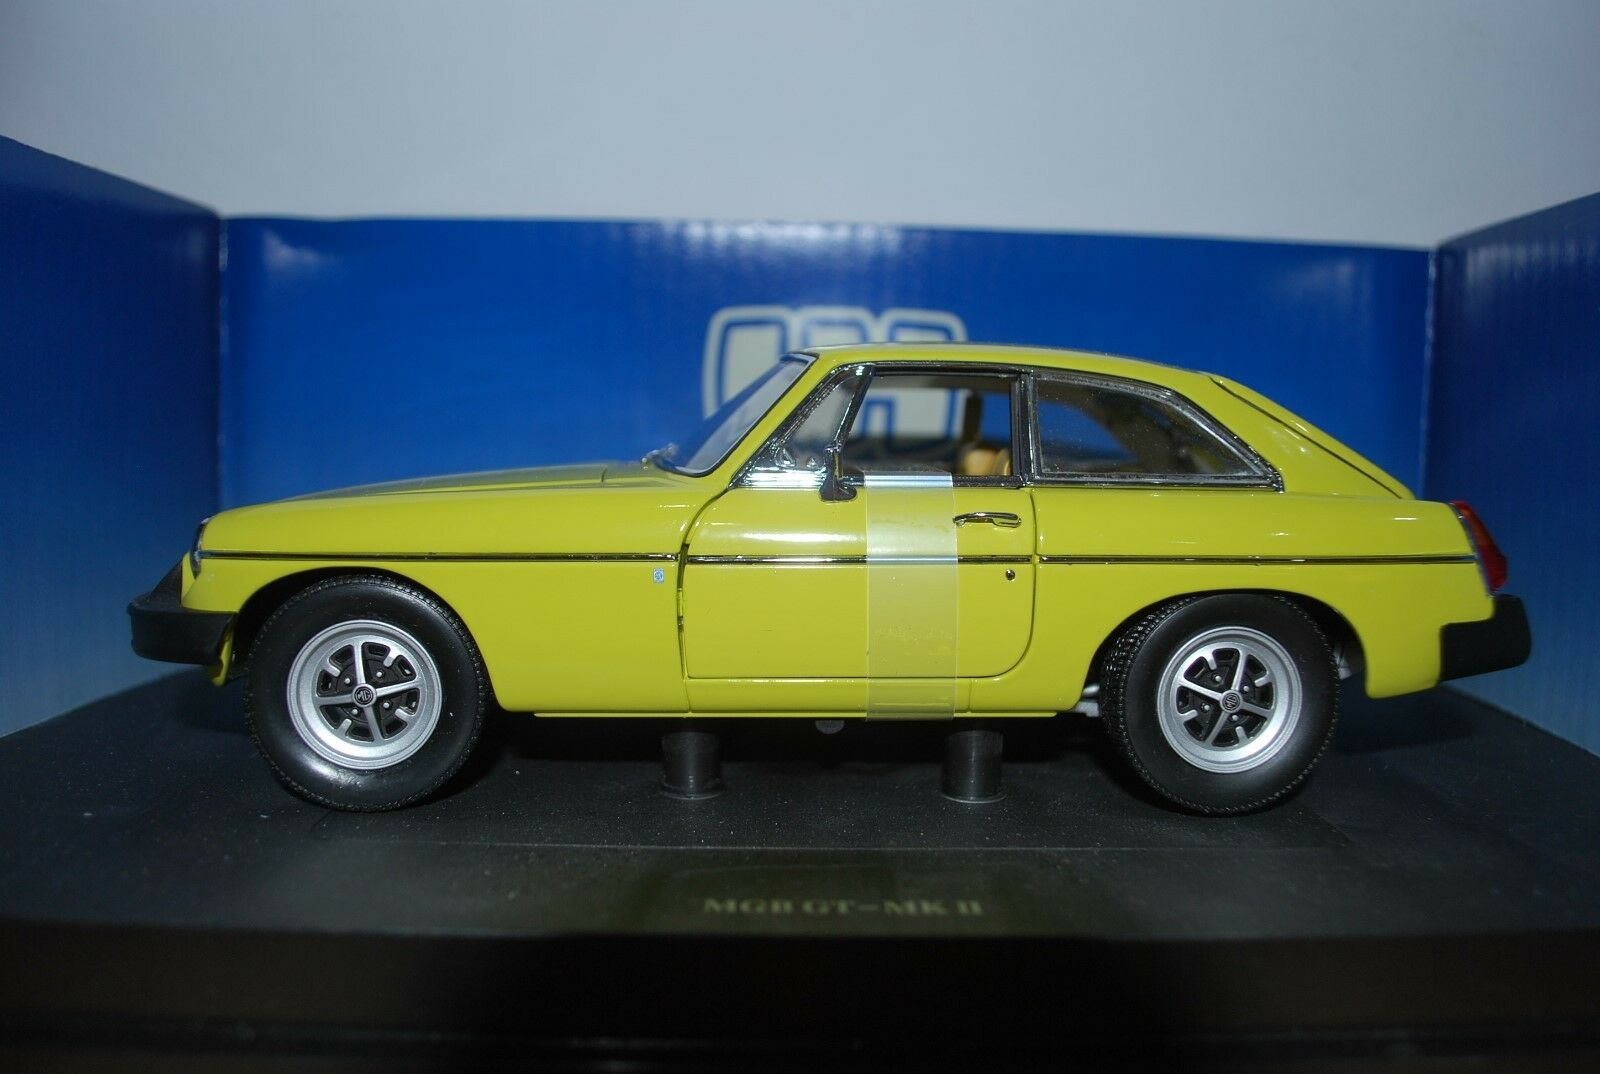 1 18 MGB GT by Universal Hobbies.